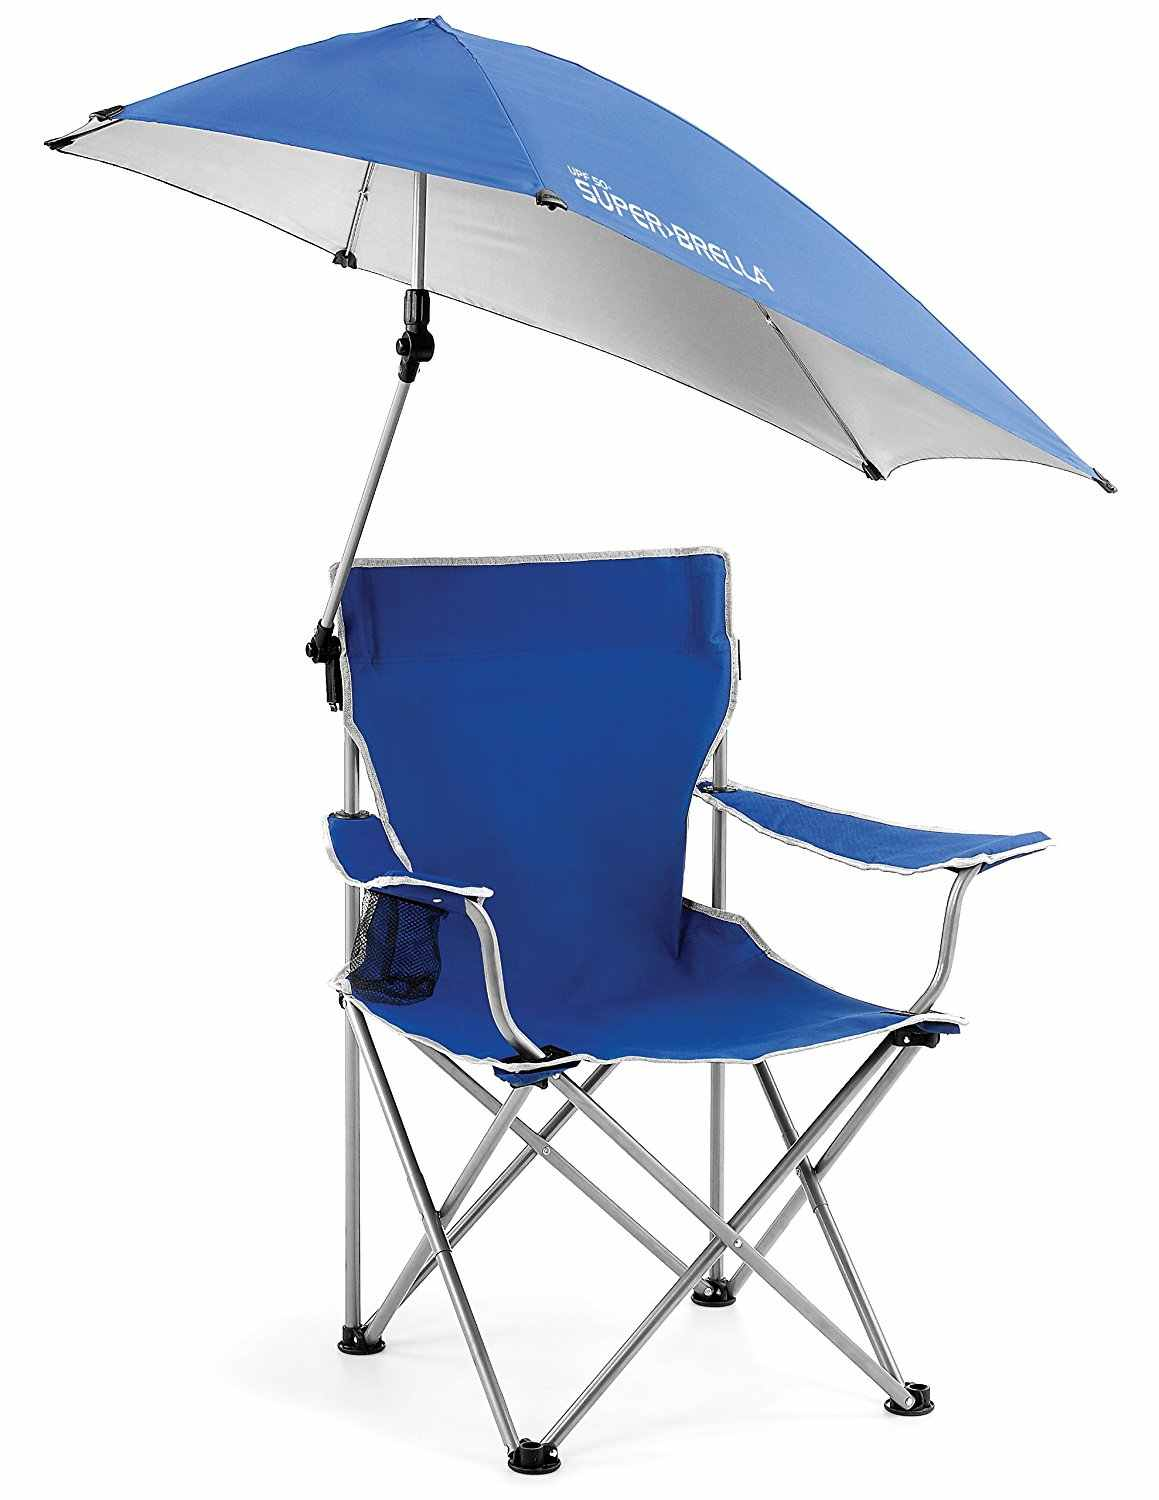 Outdoor Quik Shade Adjustable Canopy Folding Camp Chair Portable Fishing Camping Reclining Lounging Chair Heavy Duty 100kg